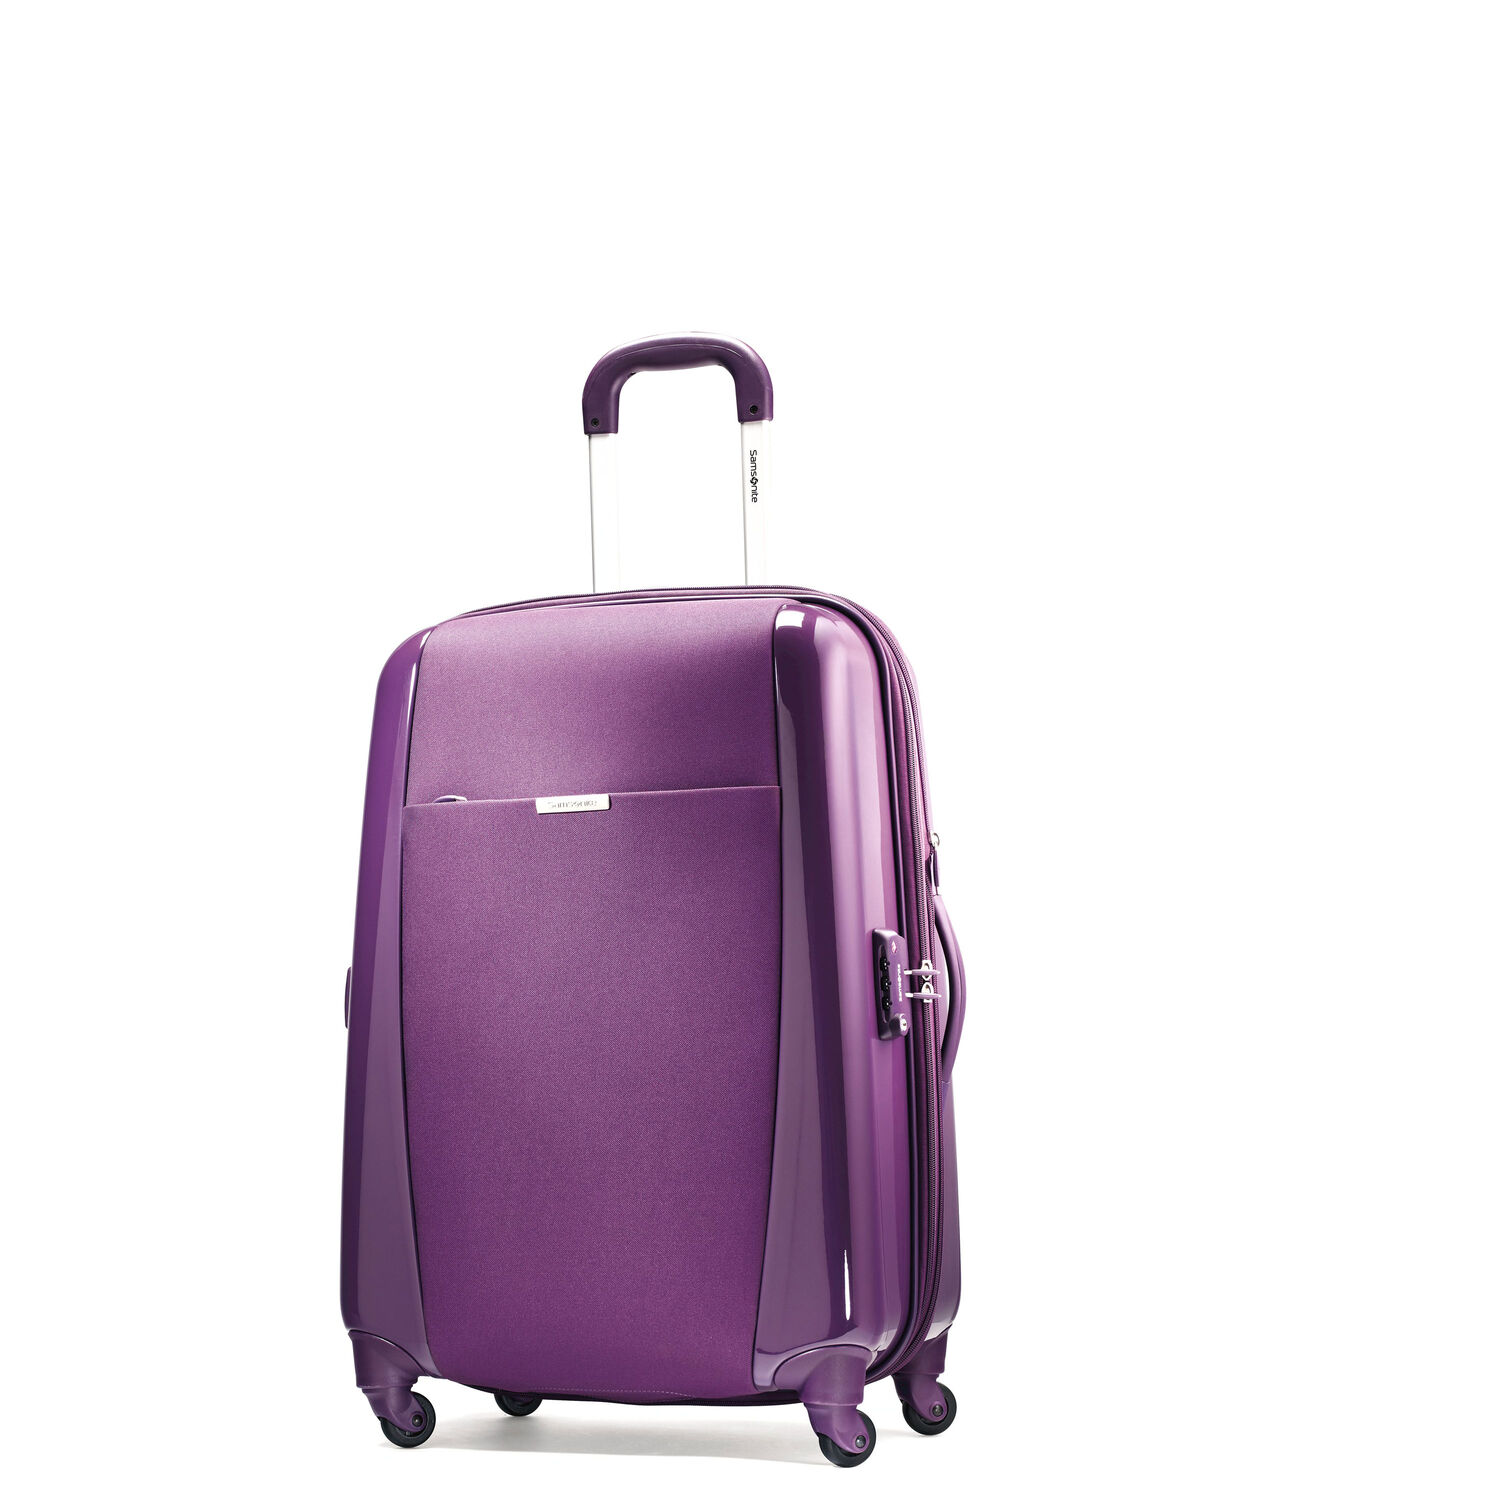 Samsonite Sahora Brights 20 Carry On Spinner Luggage In The Color Purple